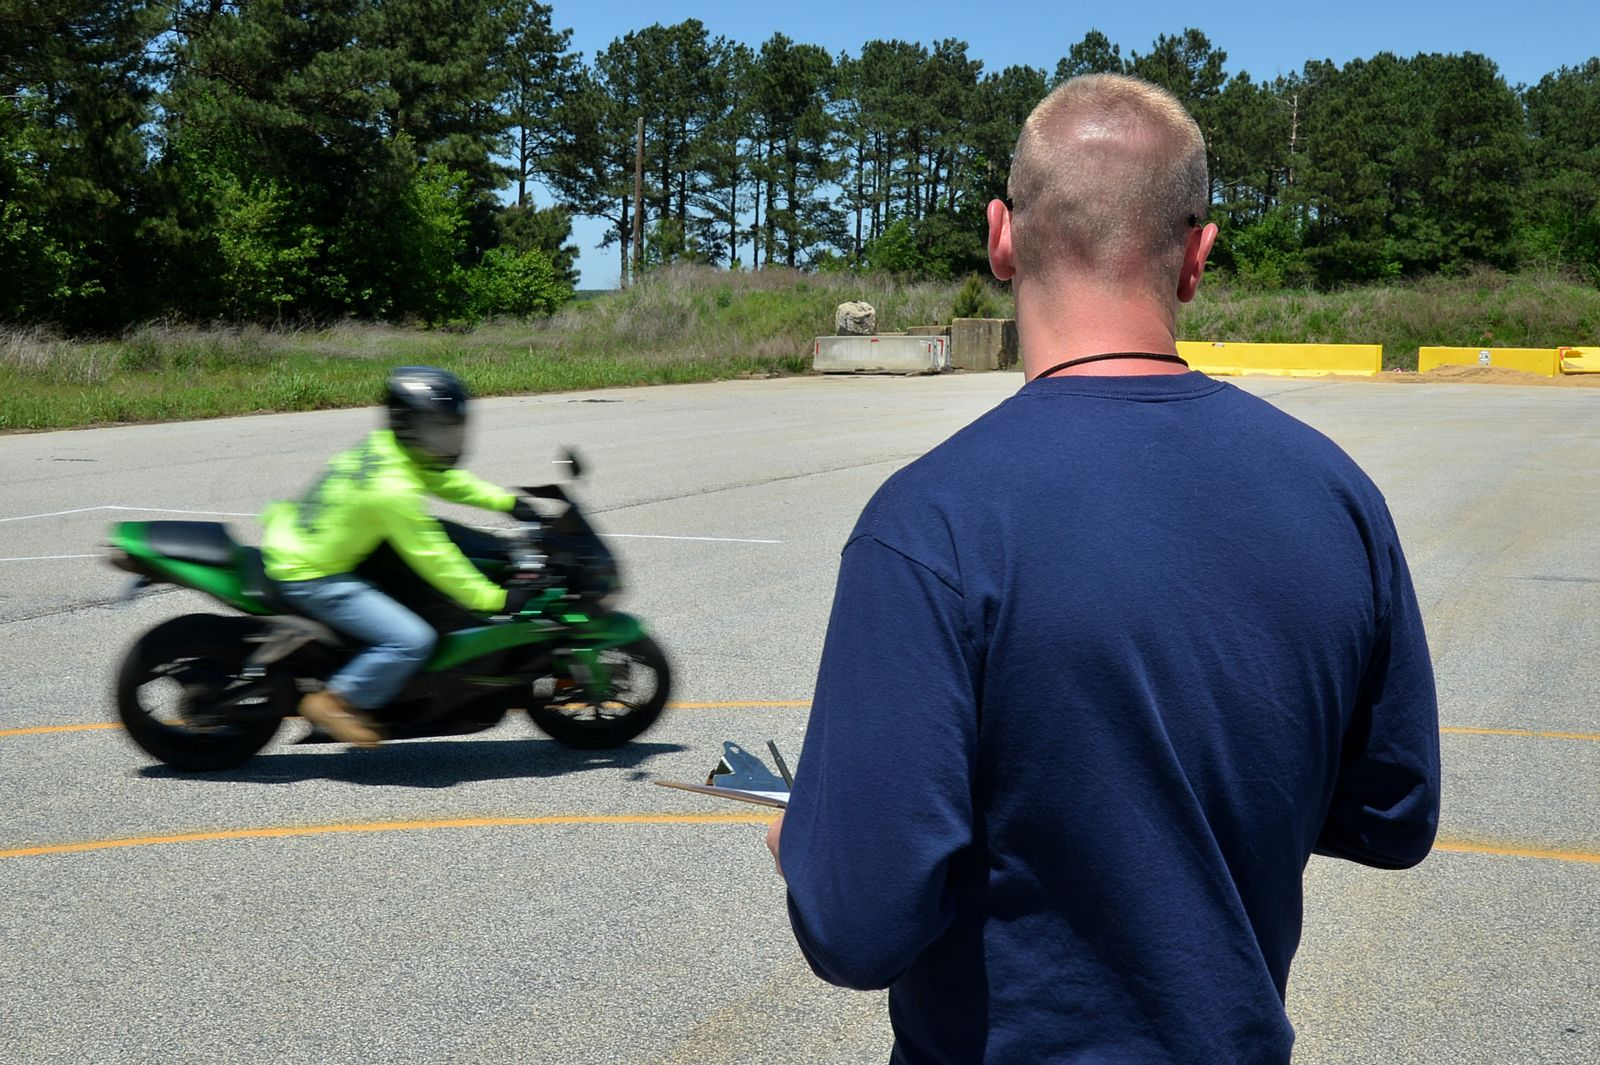 Motorcycle rider practicing Emergency Braking in a Corner